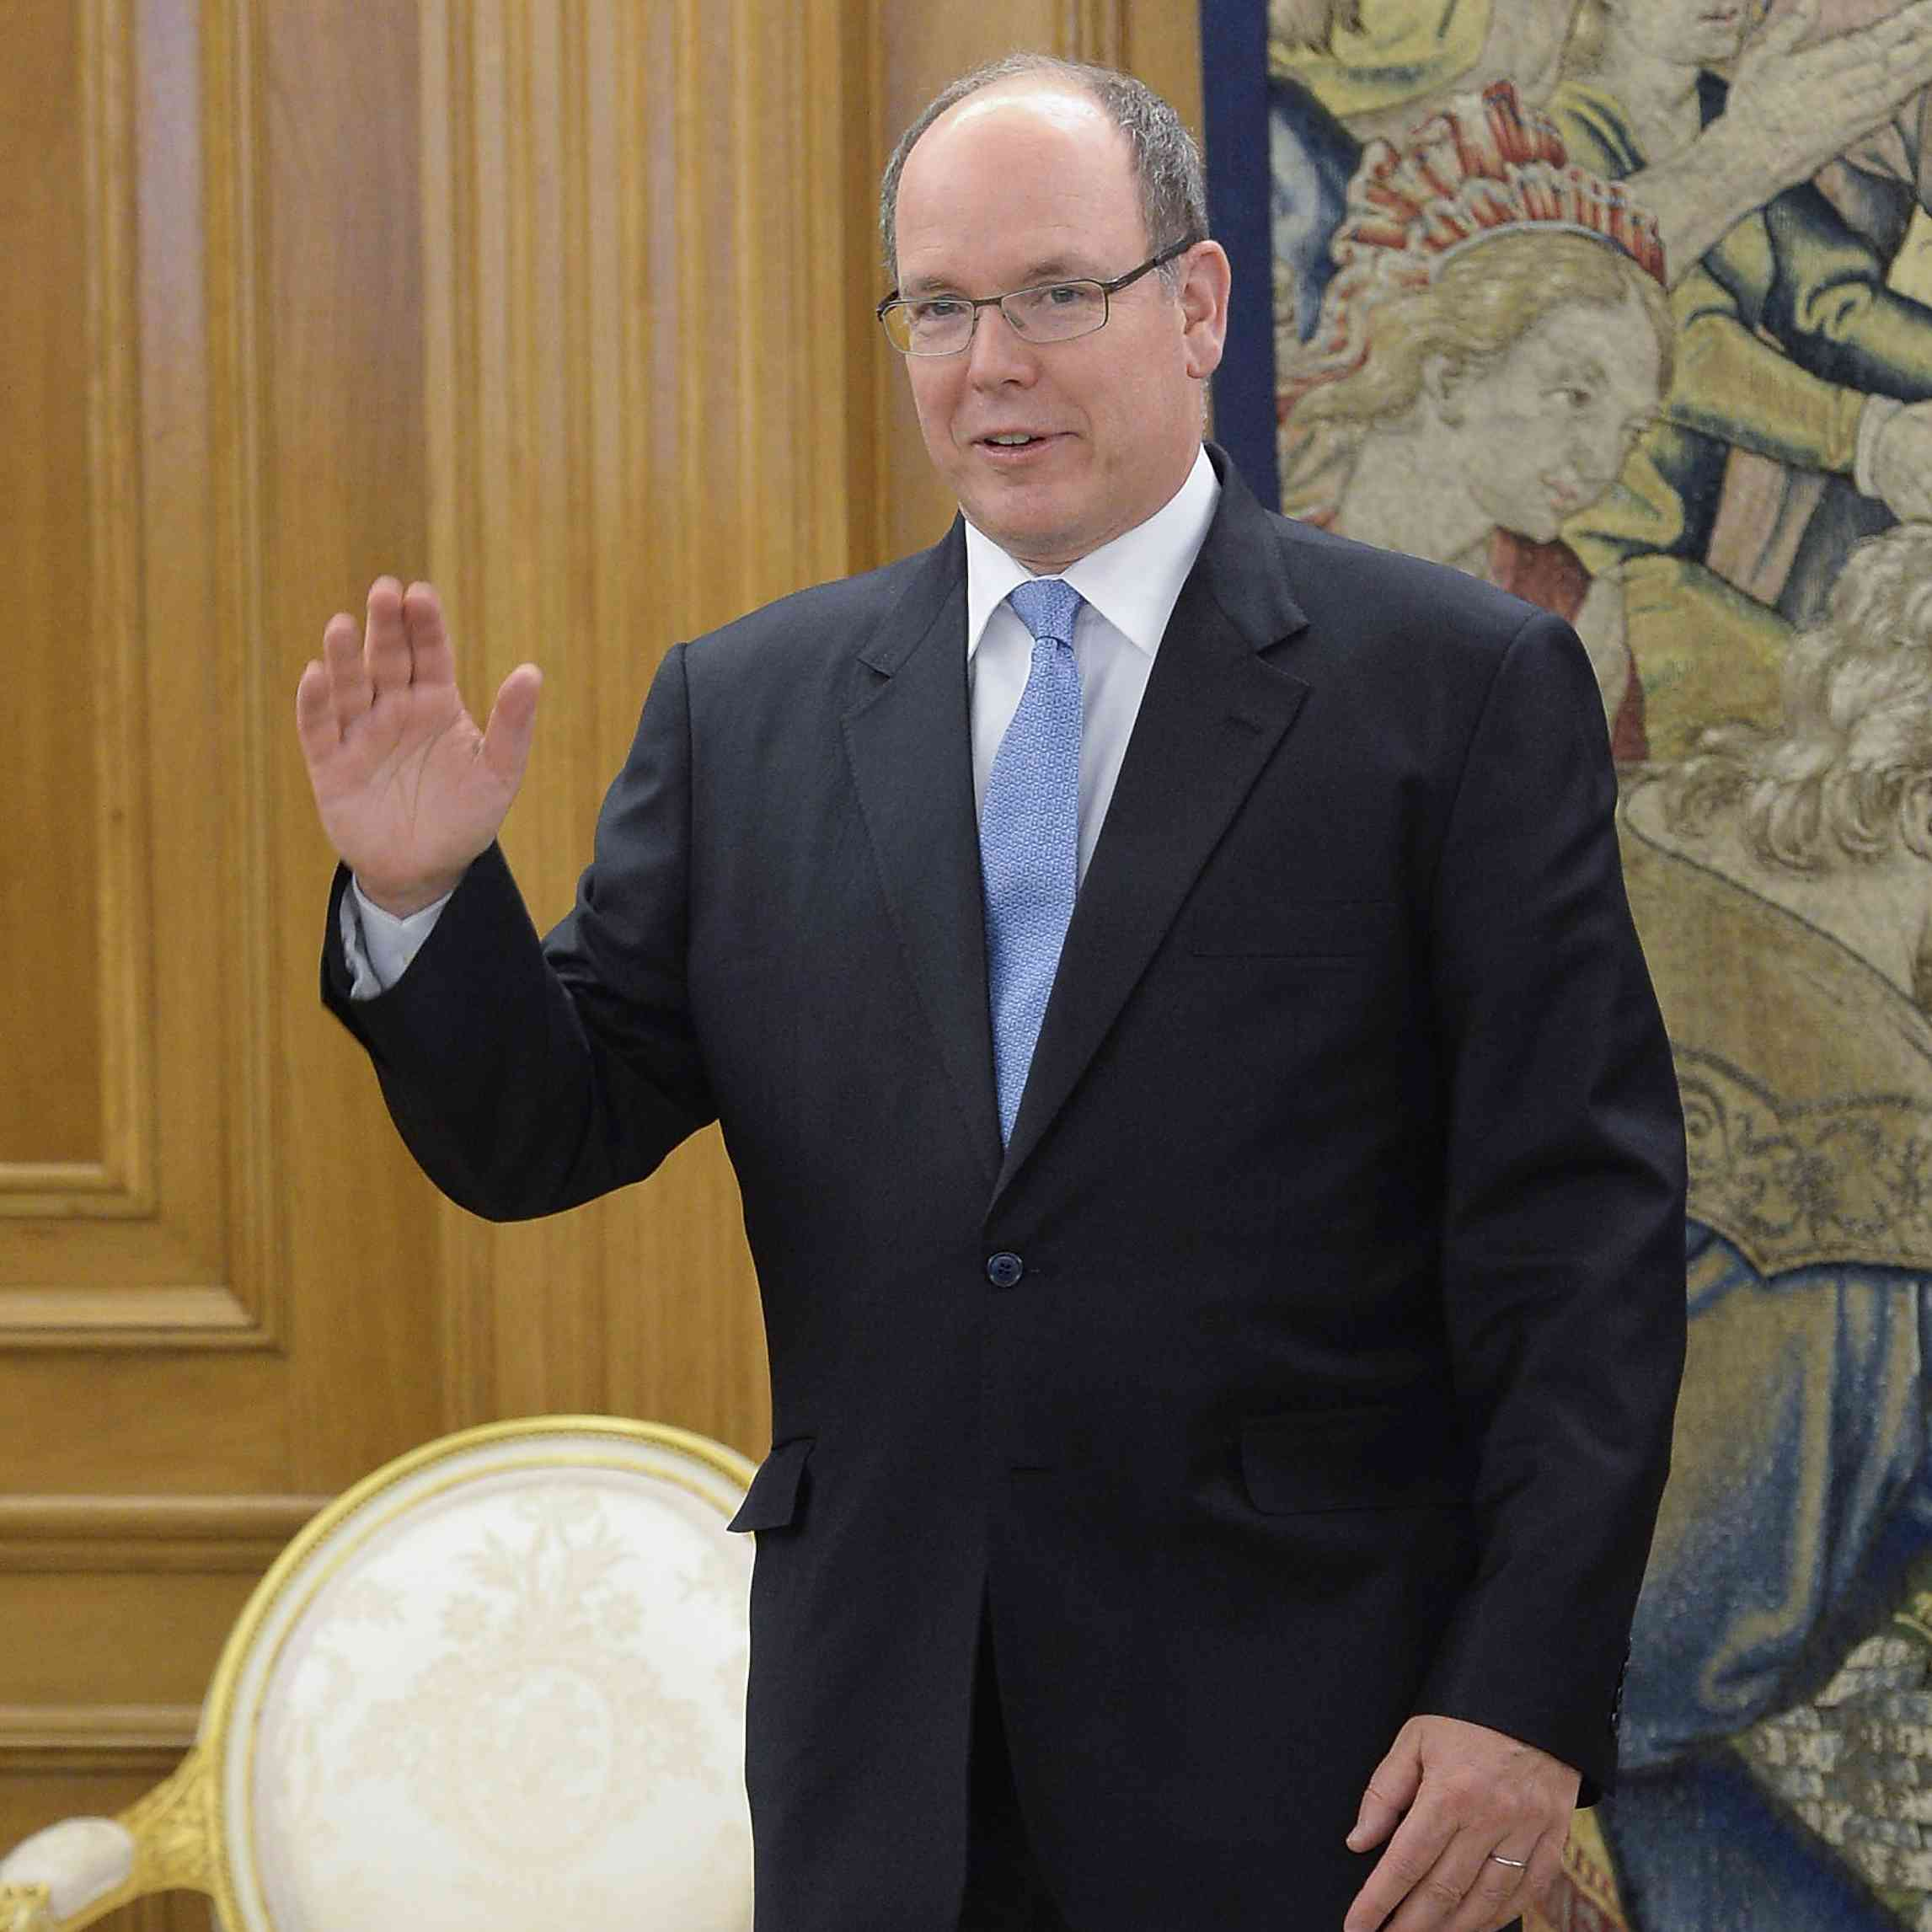 Prince Albert II of Monaco waving at a state function